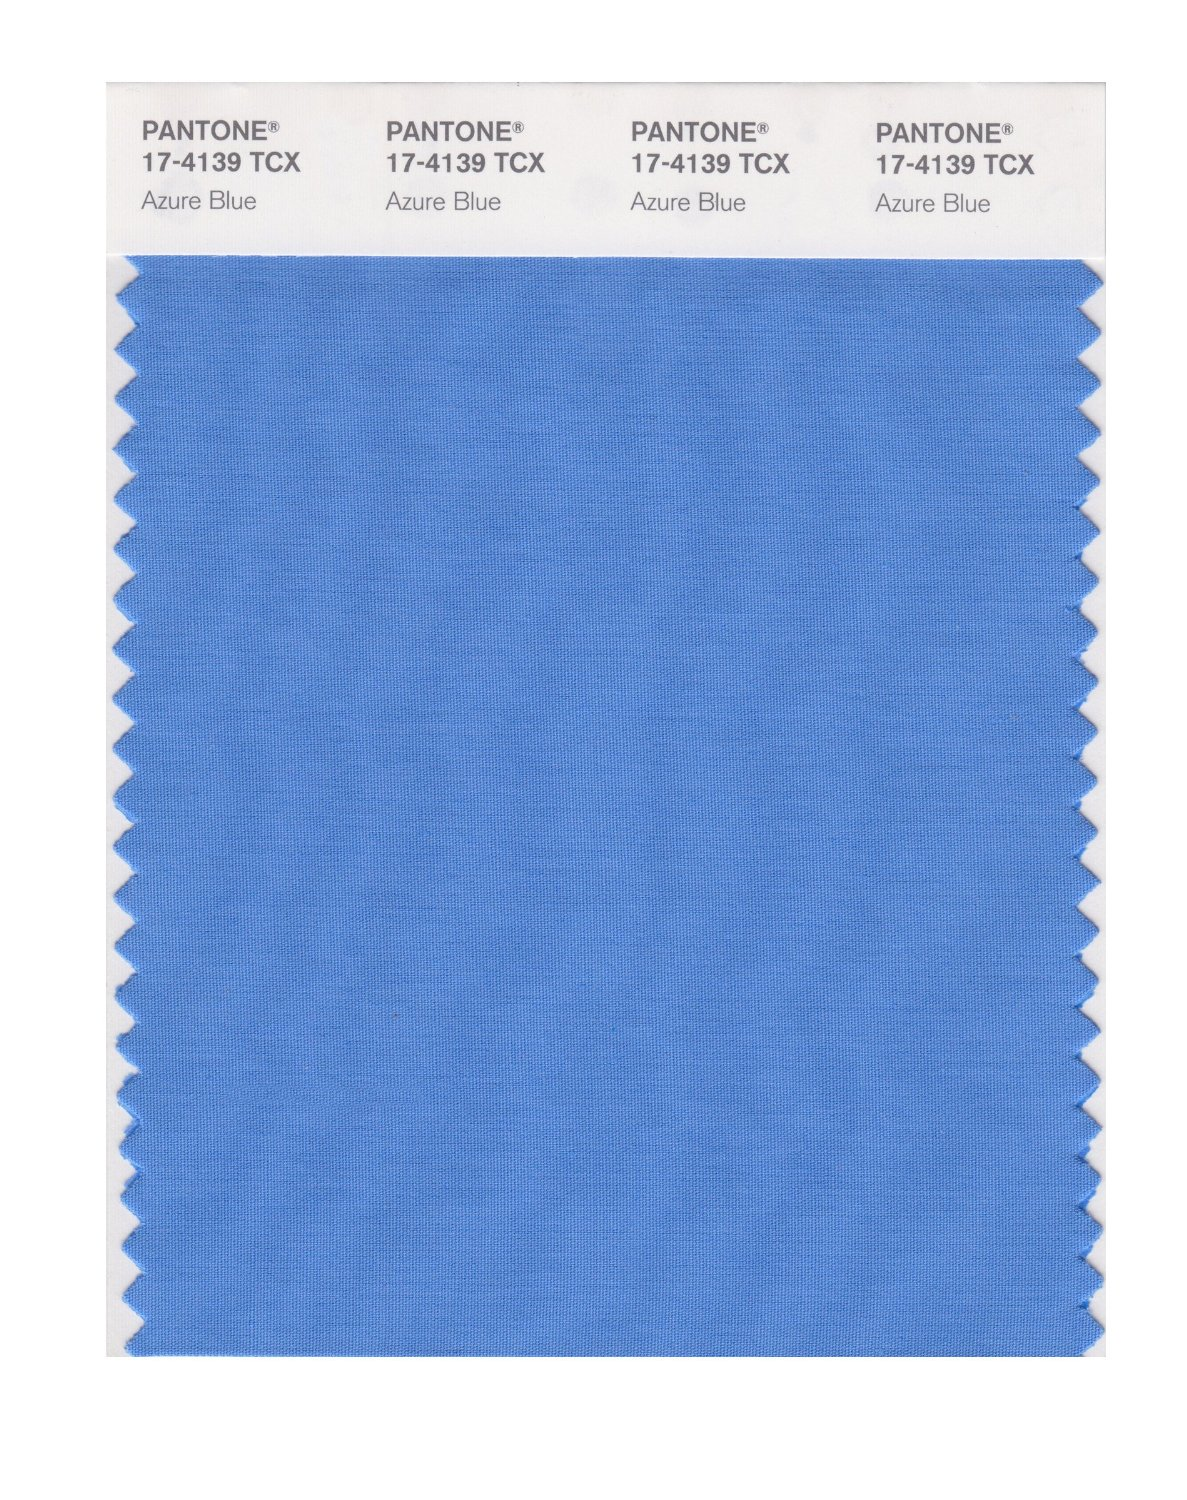 Pantone Smart Swatch 17-4139 Azure Blue